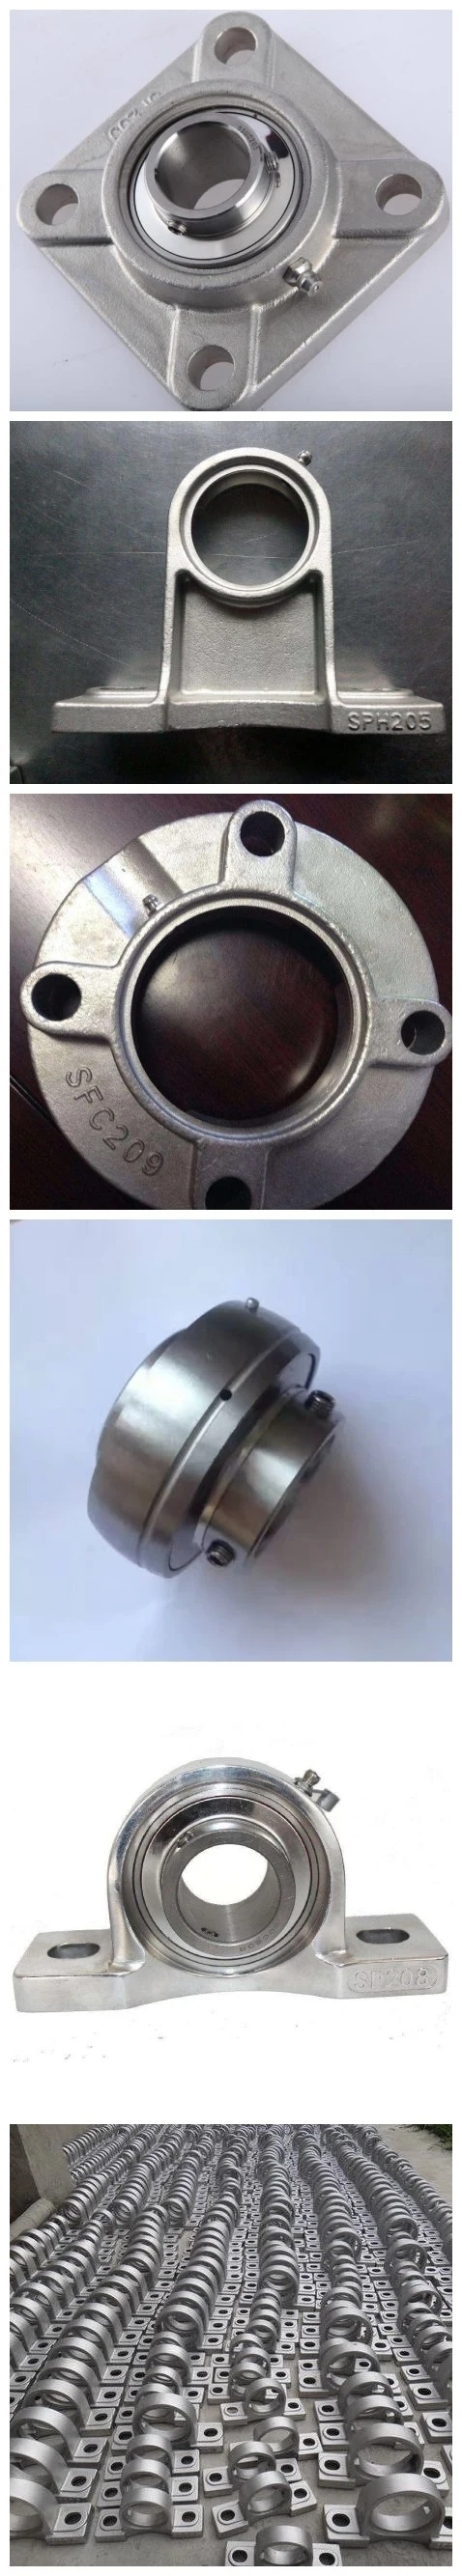 china supplier White Plastic Housings p210 f210 Stainless Steel Pillow Block Bearings